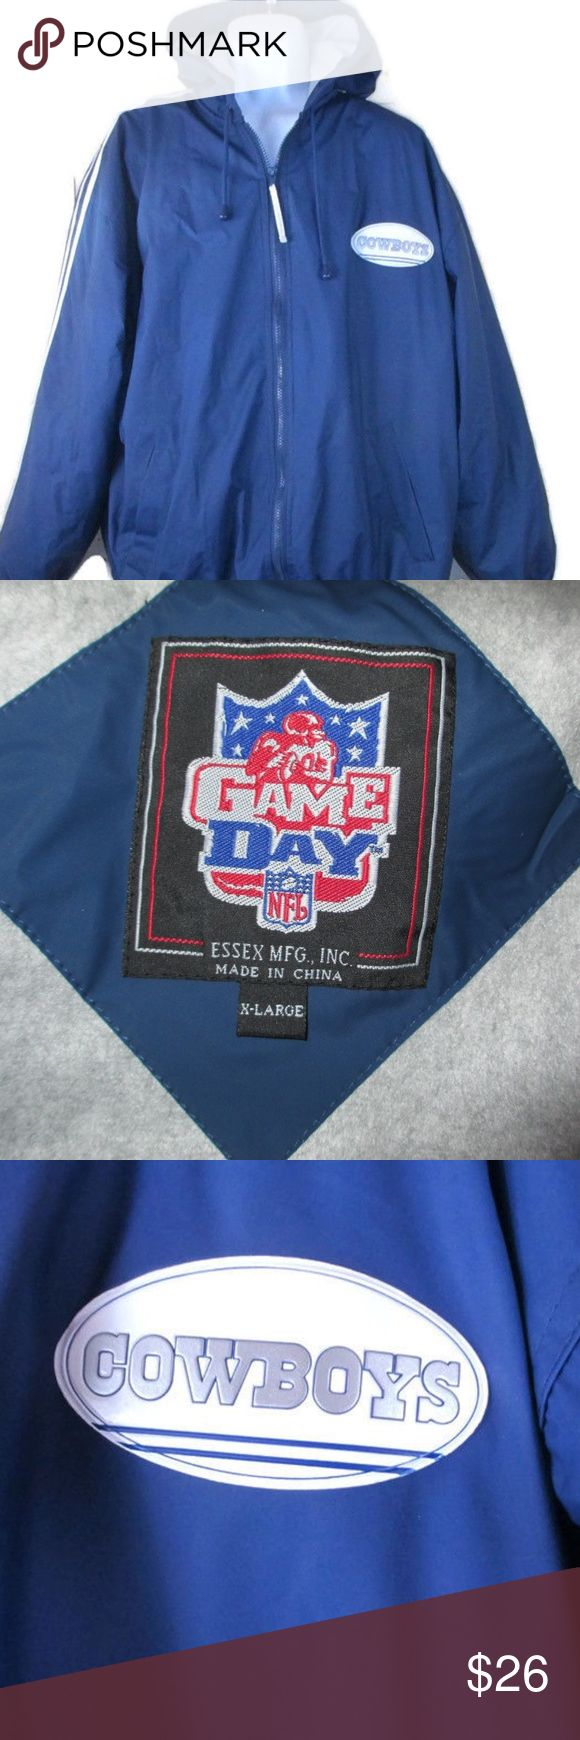 Essex Dallas Cowboys XL Game Day Coat NFL Jacket Essex Game Dame NFL Vintage Zip Up Dallas Cowboys Jacket/Coat Hooded Size XL Cowboys Logo On Front Zip Up Excellent Condition!   * No Trades * Reasonable Offers * Happy Shopping! :) Essex Jackets & Coats